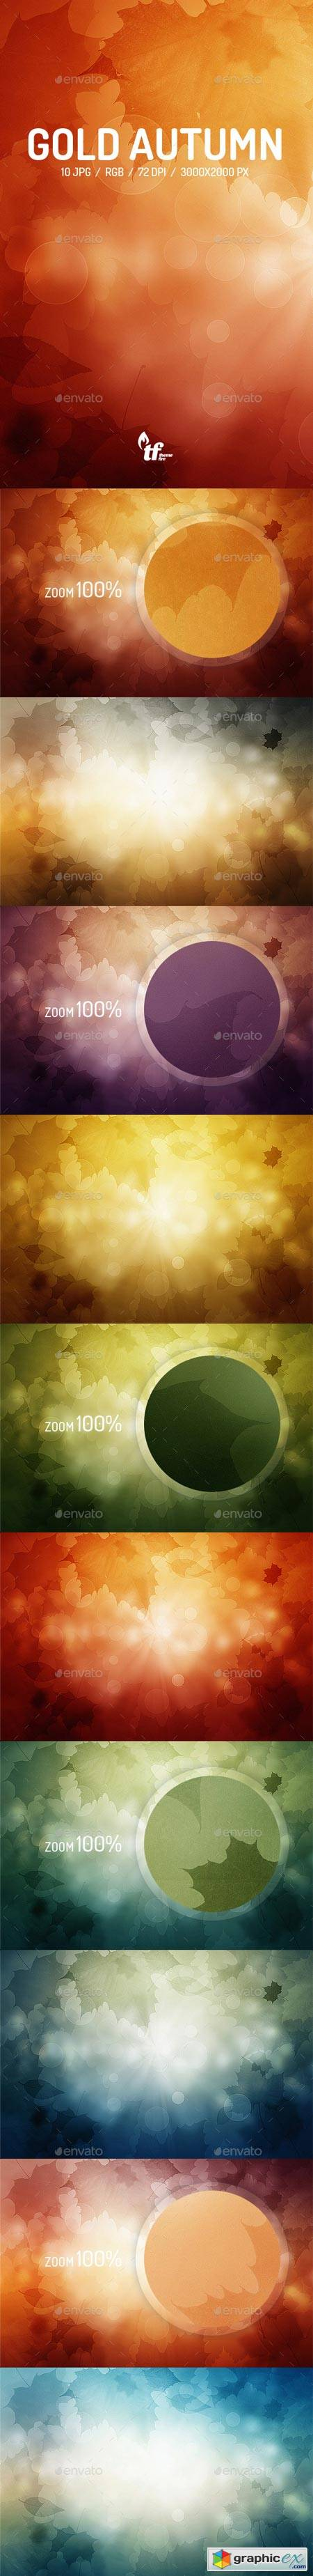 Gold Autumn Backgrounds 9091523  stock images